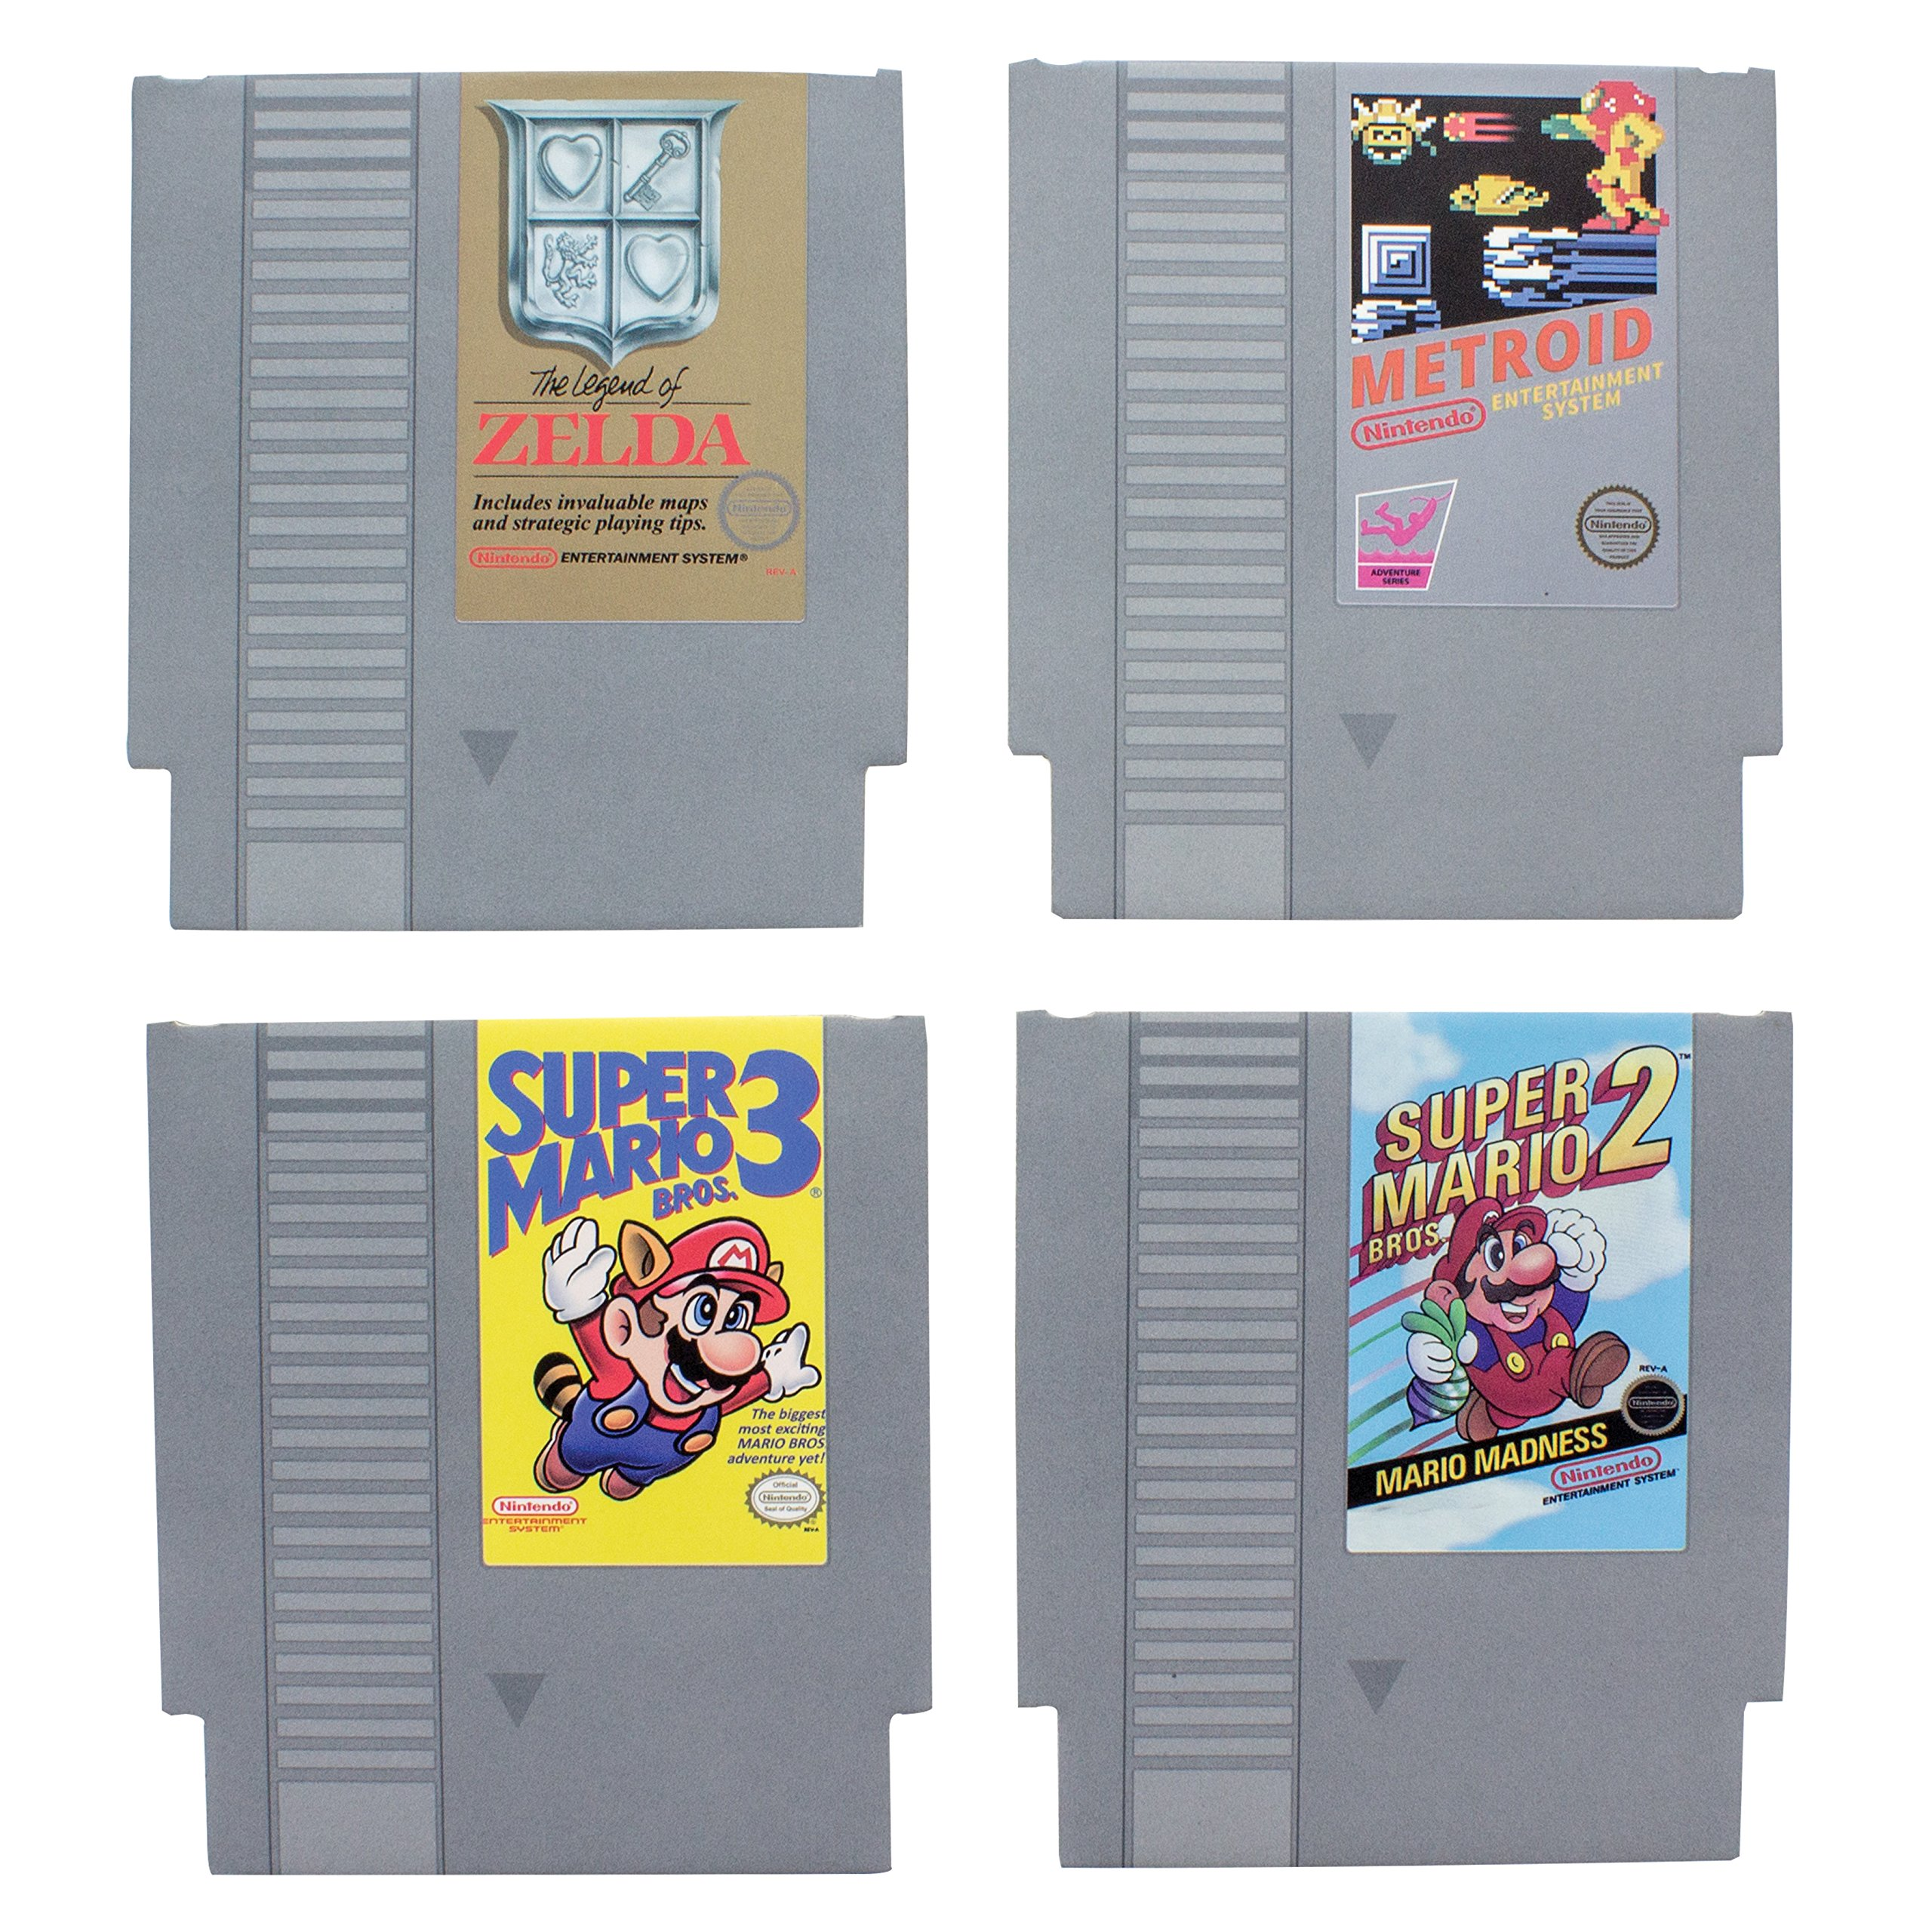 Paladone Nintendo NES Cartridge Coasters for Drinks - Nostalgic Drink Coasters Featuring All of Your Favorite Games